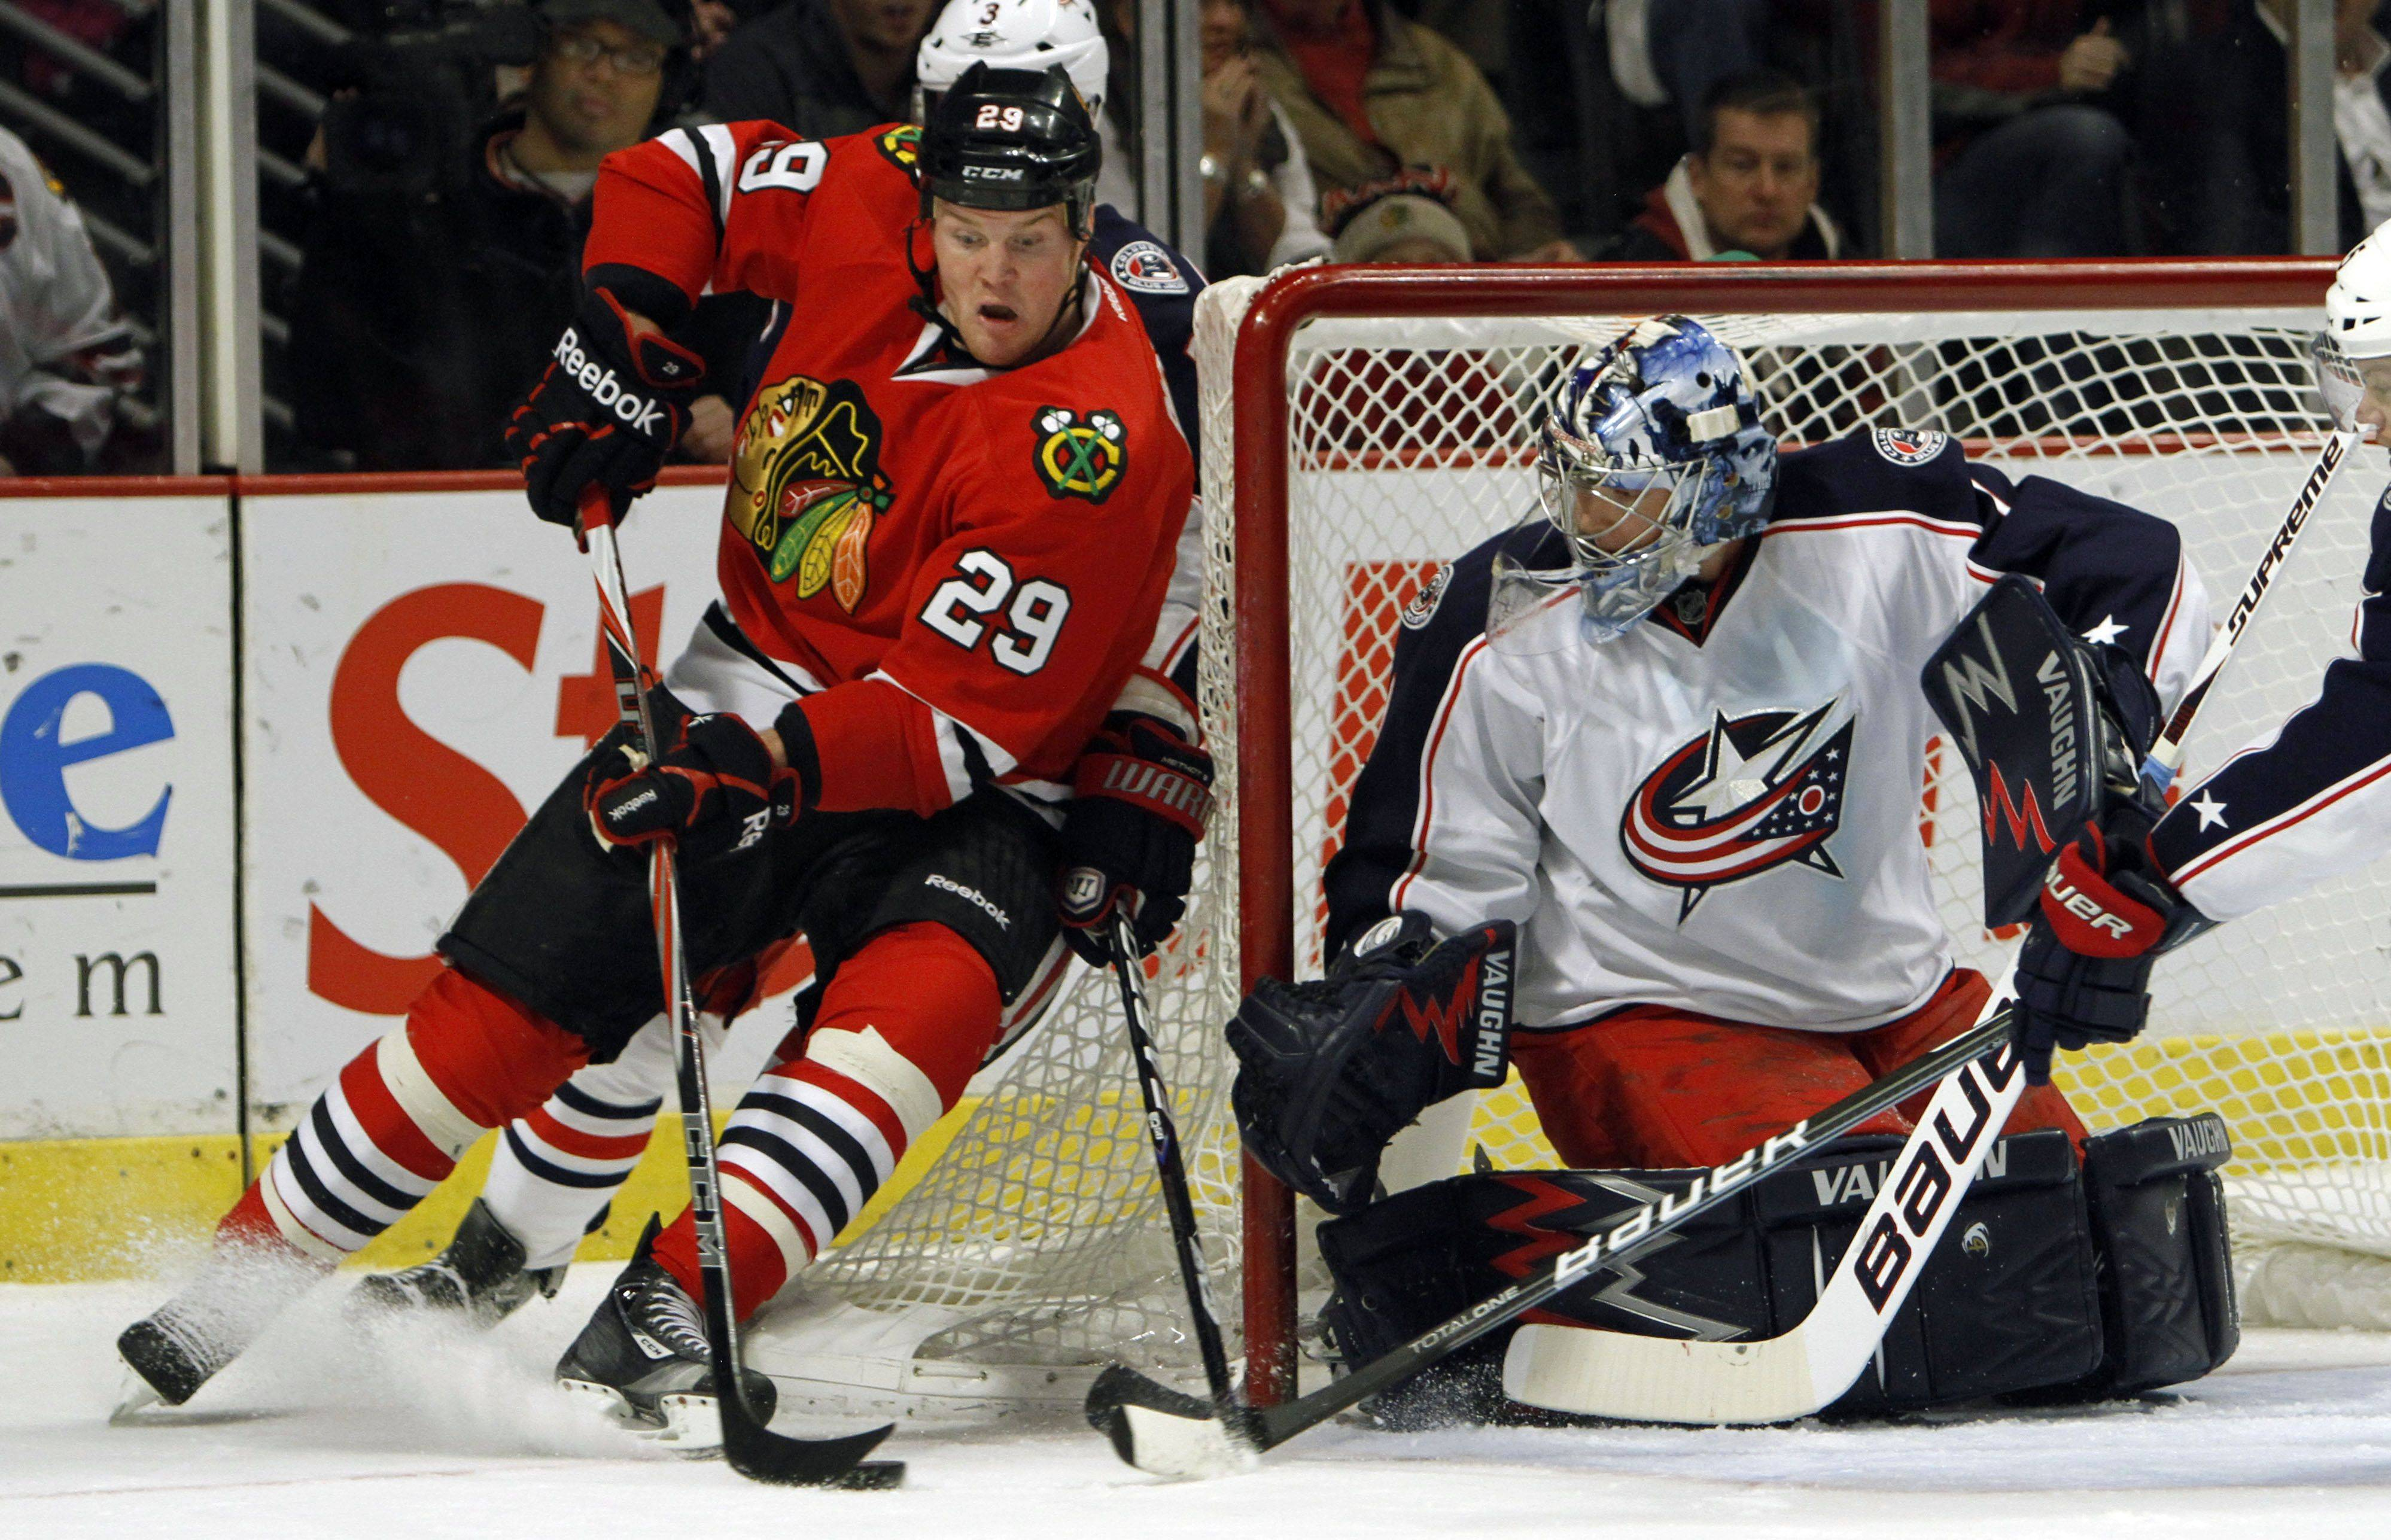 Chicago Blackhawks left wing Bryan Bickell tries a wrap around on Columbus Blue Jackets goalie Steve Mason during their game Monday night at the United Center in Chicago.